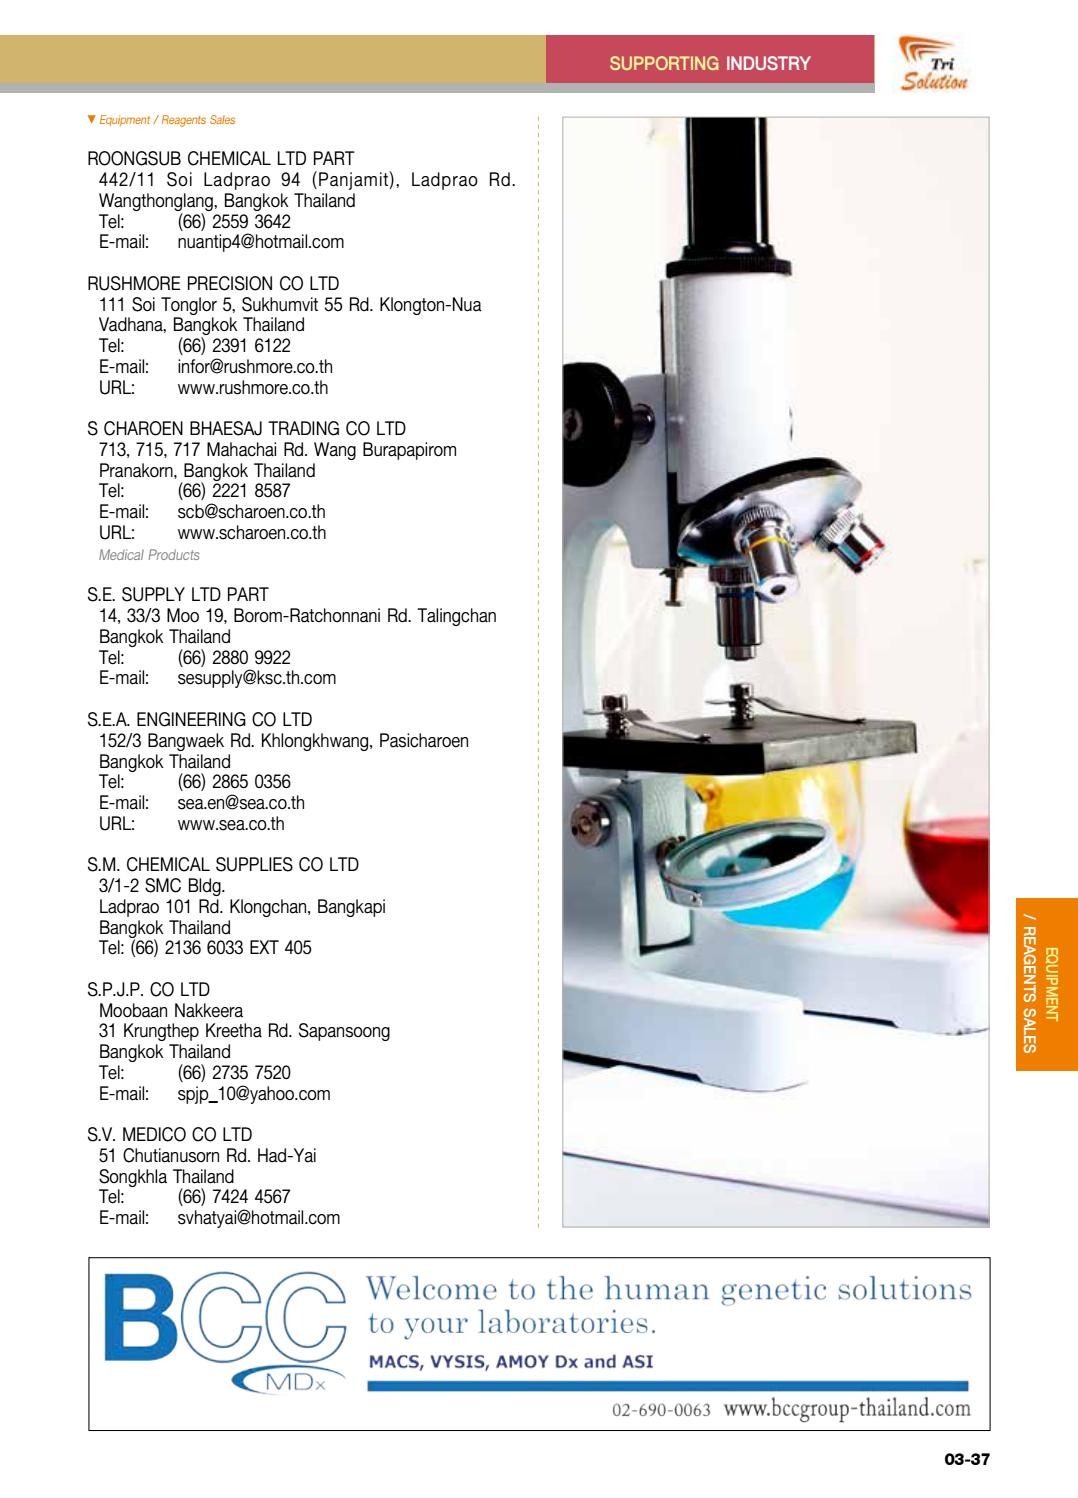 Thailand Biotech Guide 2016 (Edition 2016/2017) by Green